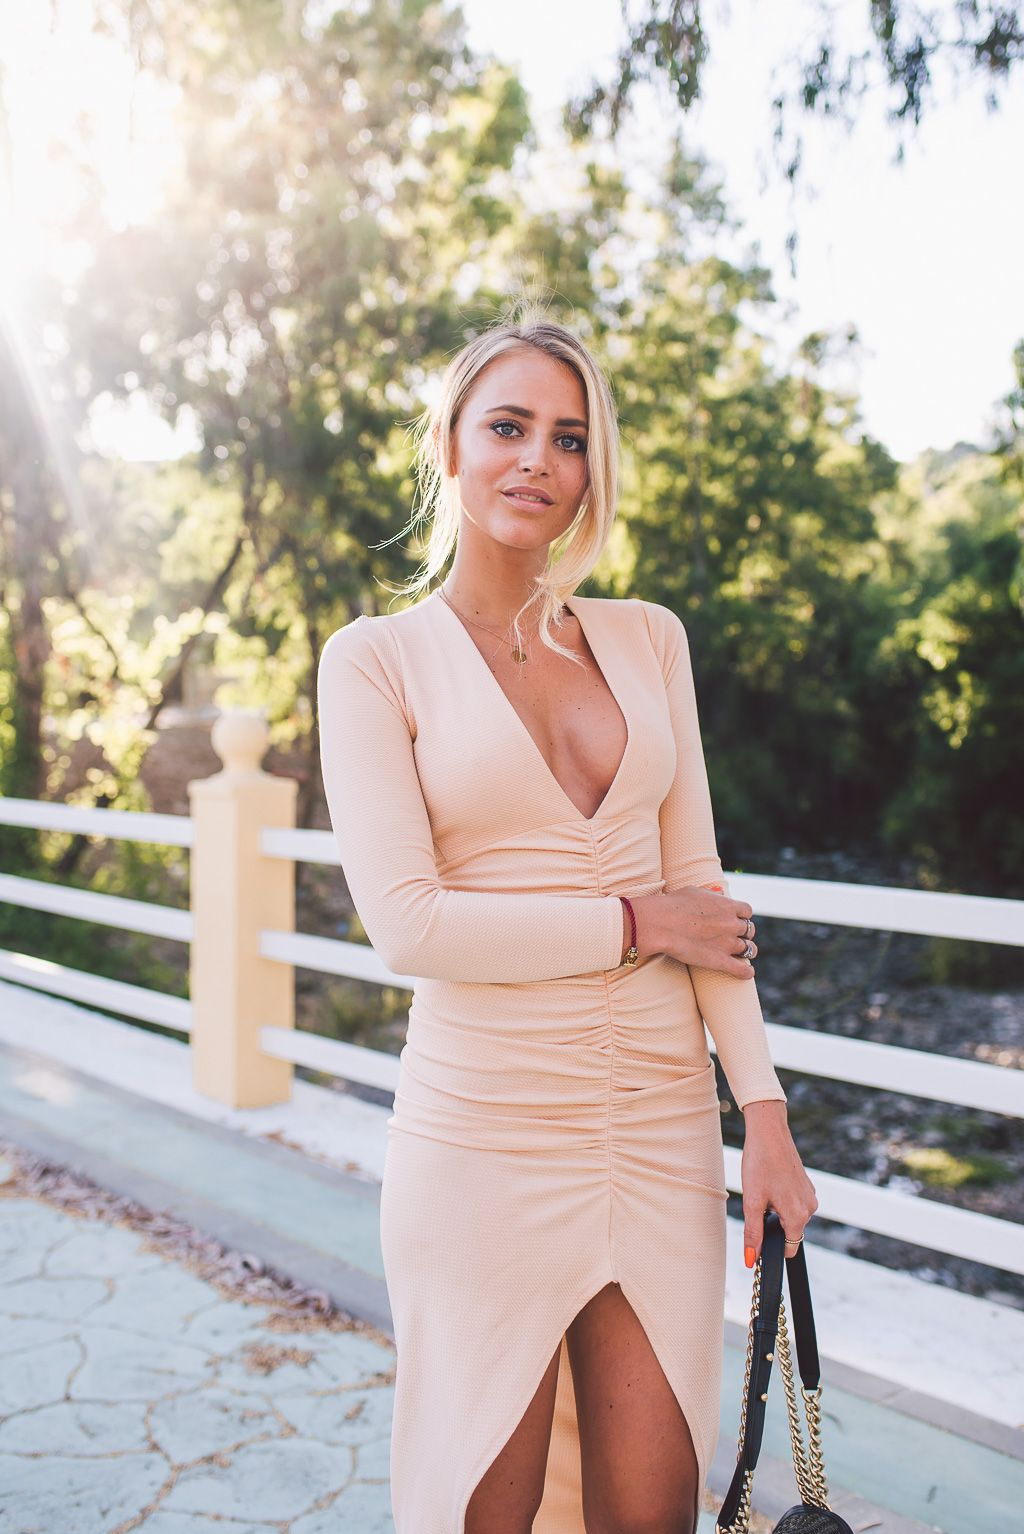 Janni Deler (Dress from Nelly) | Style | Pinterest | Nelly ...